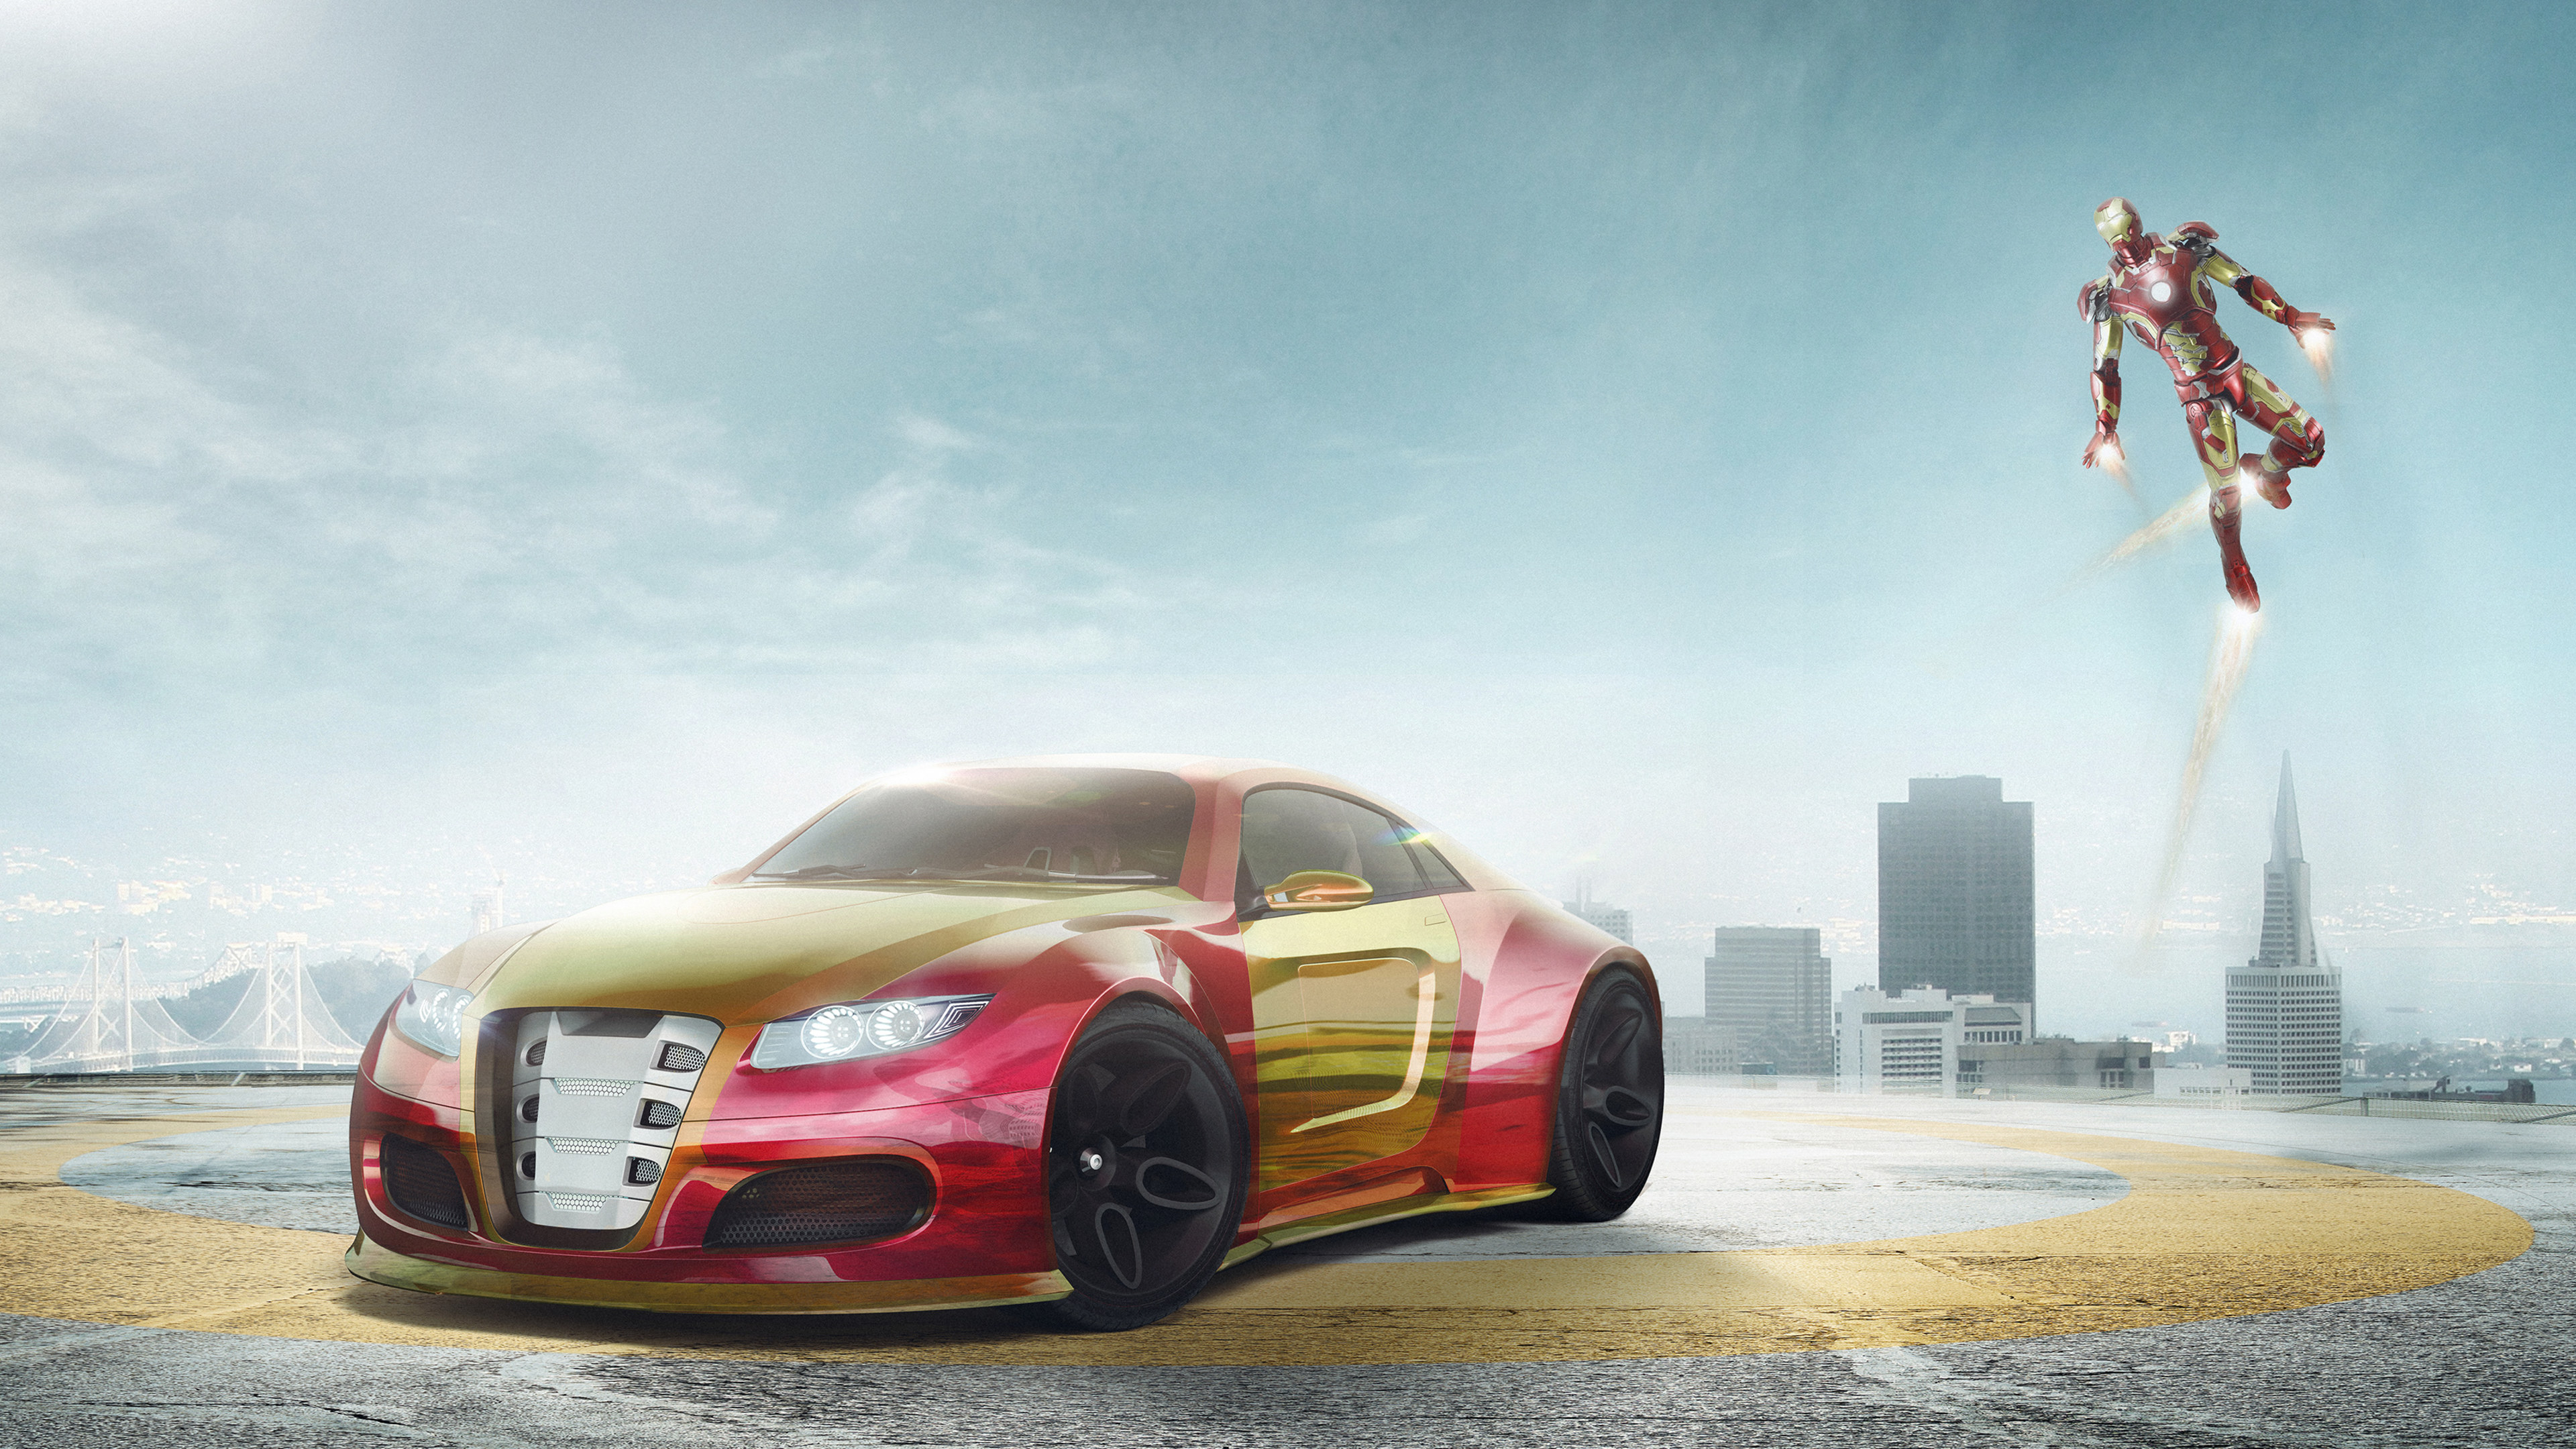 iron man car 4k artwork 1536520215 - Iron Man Car 4k Artwork - superheroes wallpapers, iron man wallpapers, hd-wallpapers, digital art wallpapers, artwork wallpapers, artist wallpapers, 4k-wallpapers